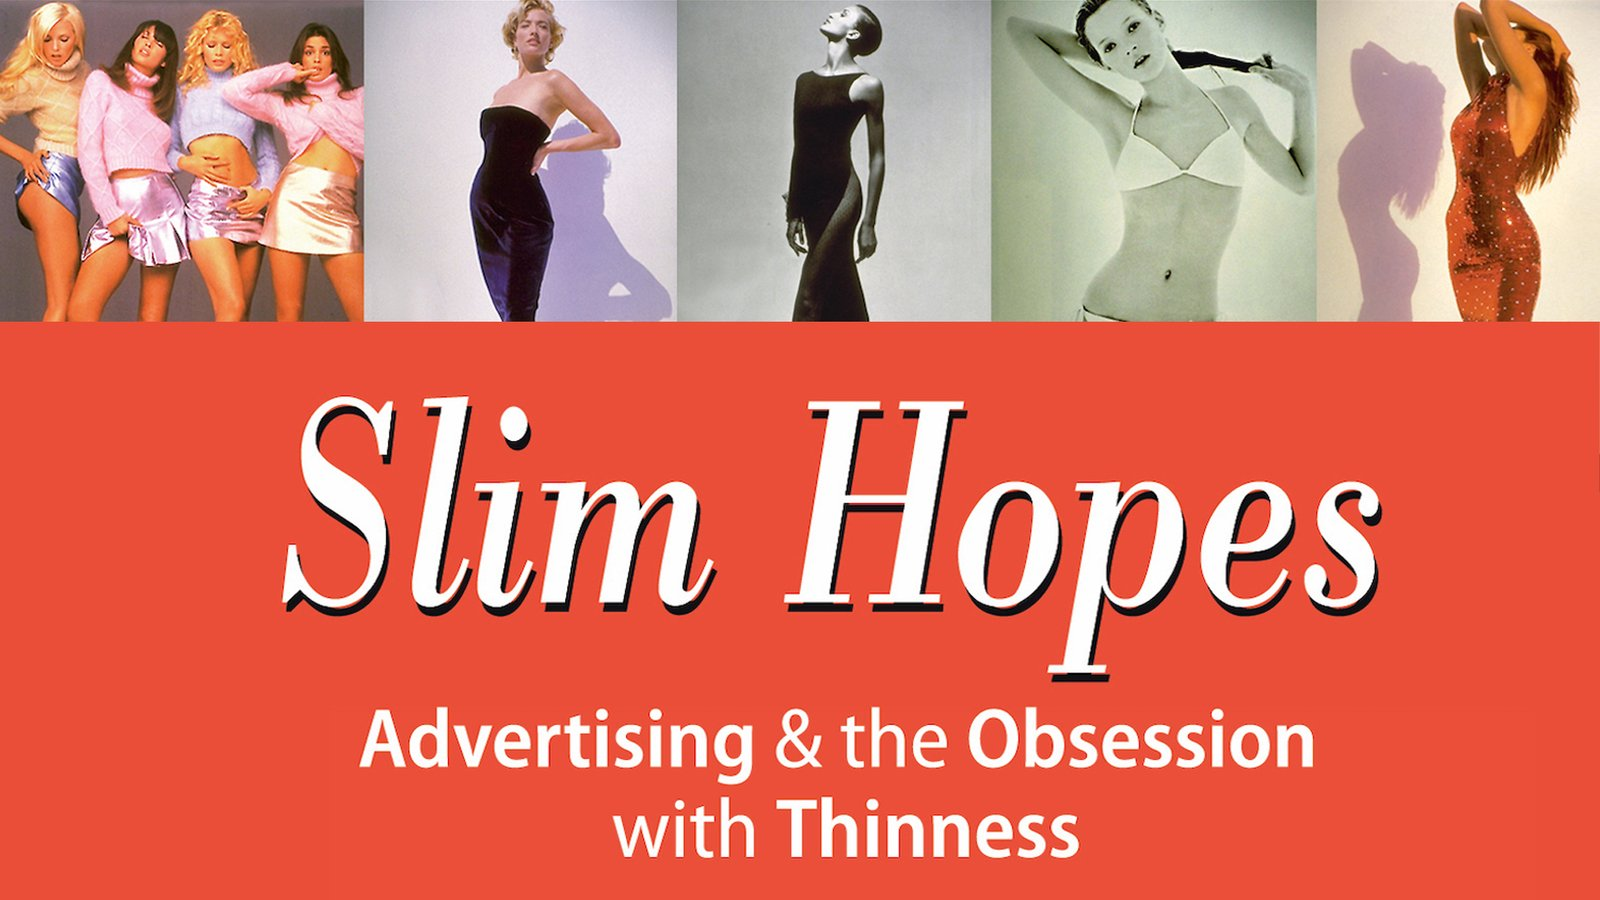 Slim Hopes - Advertising & the Obsession with Thinness